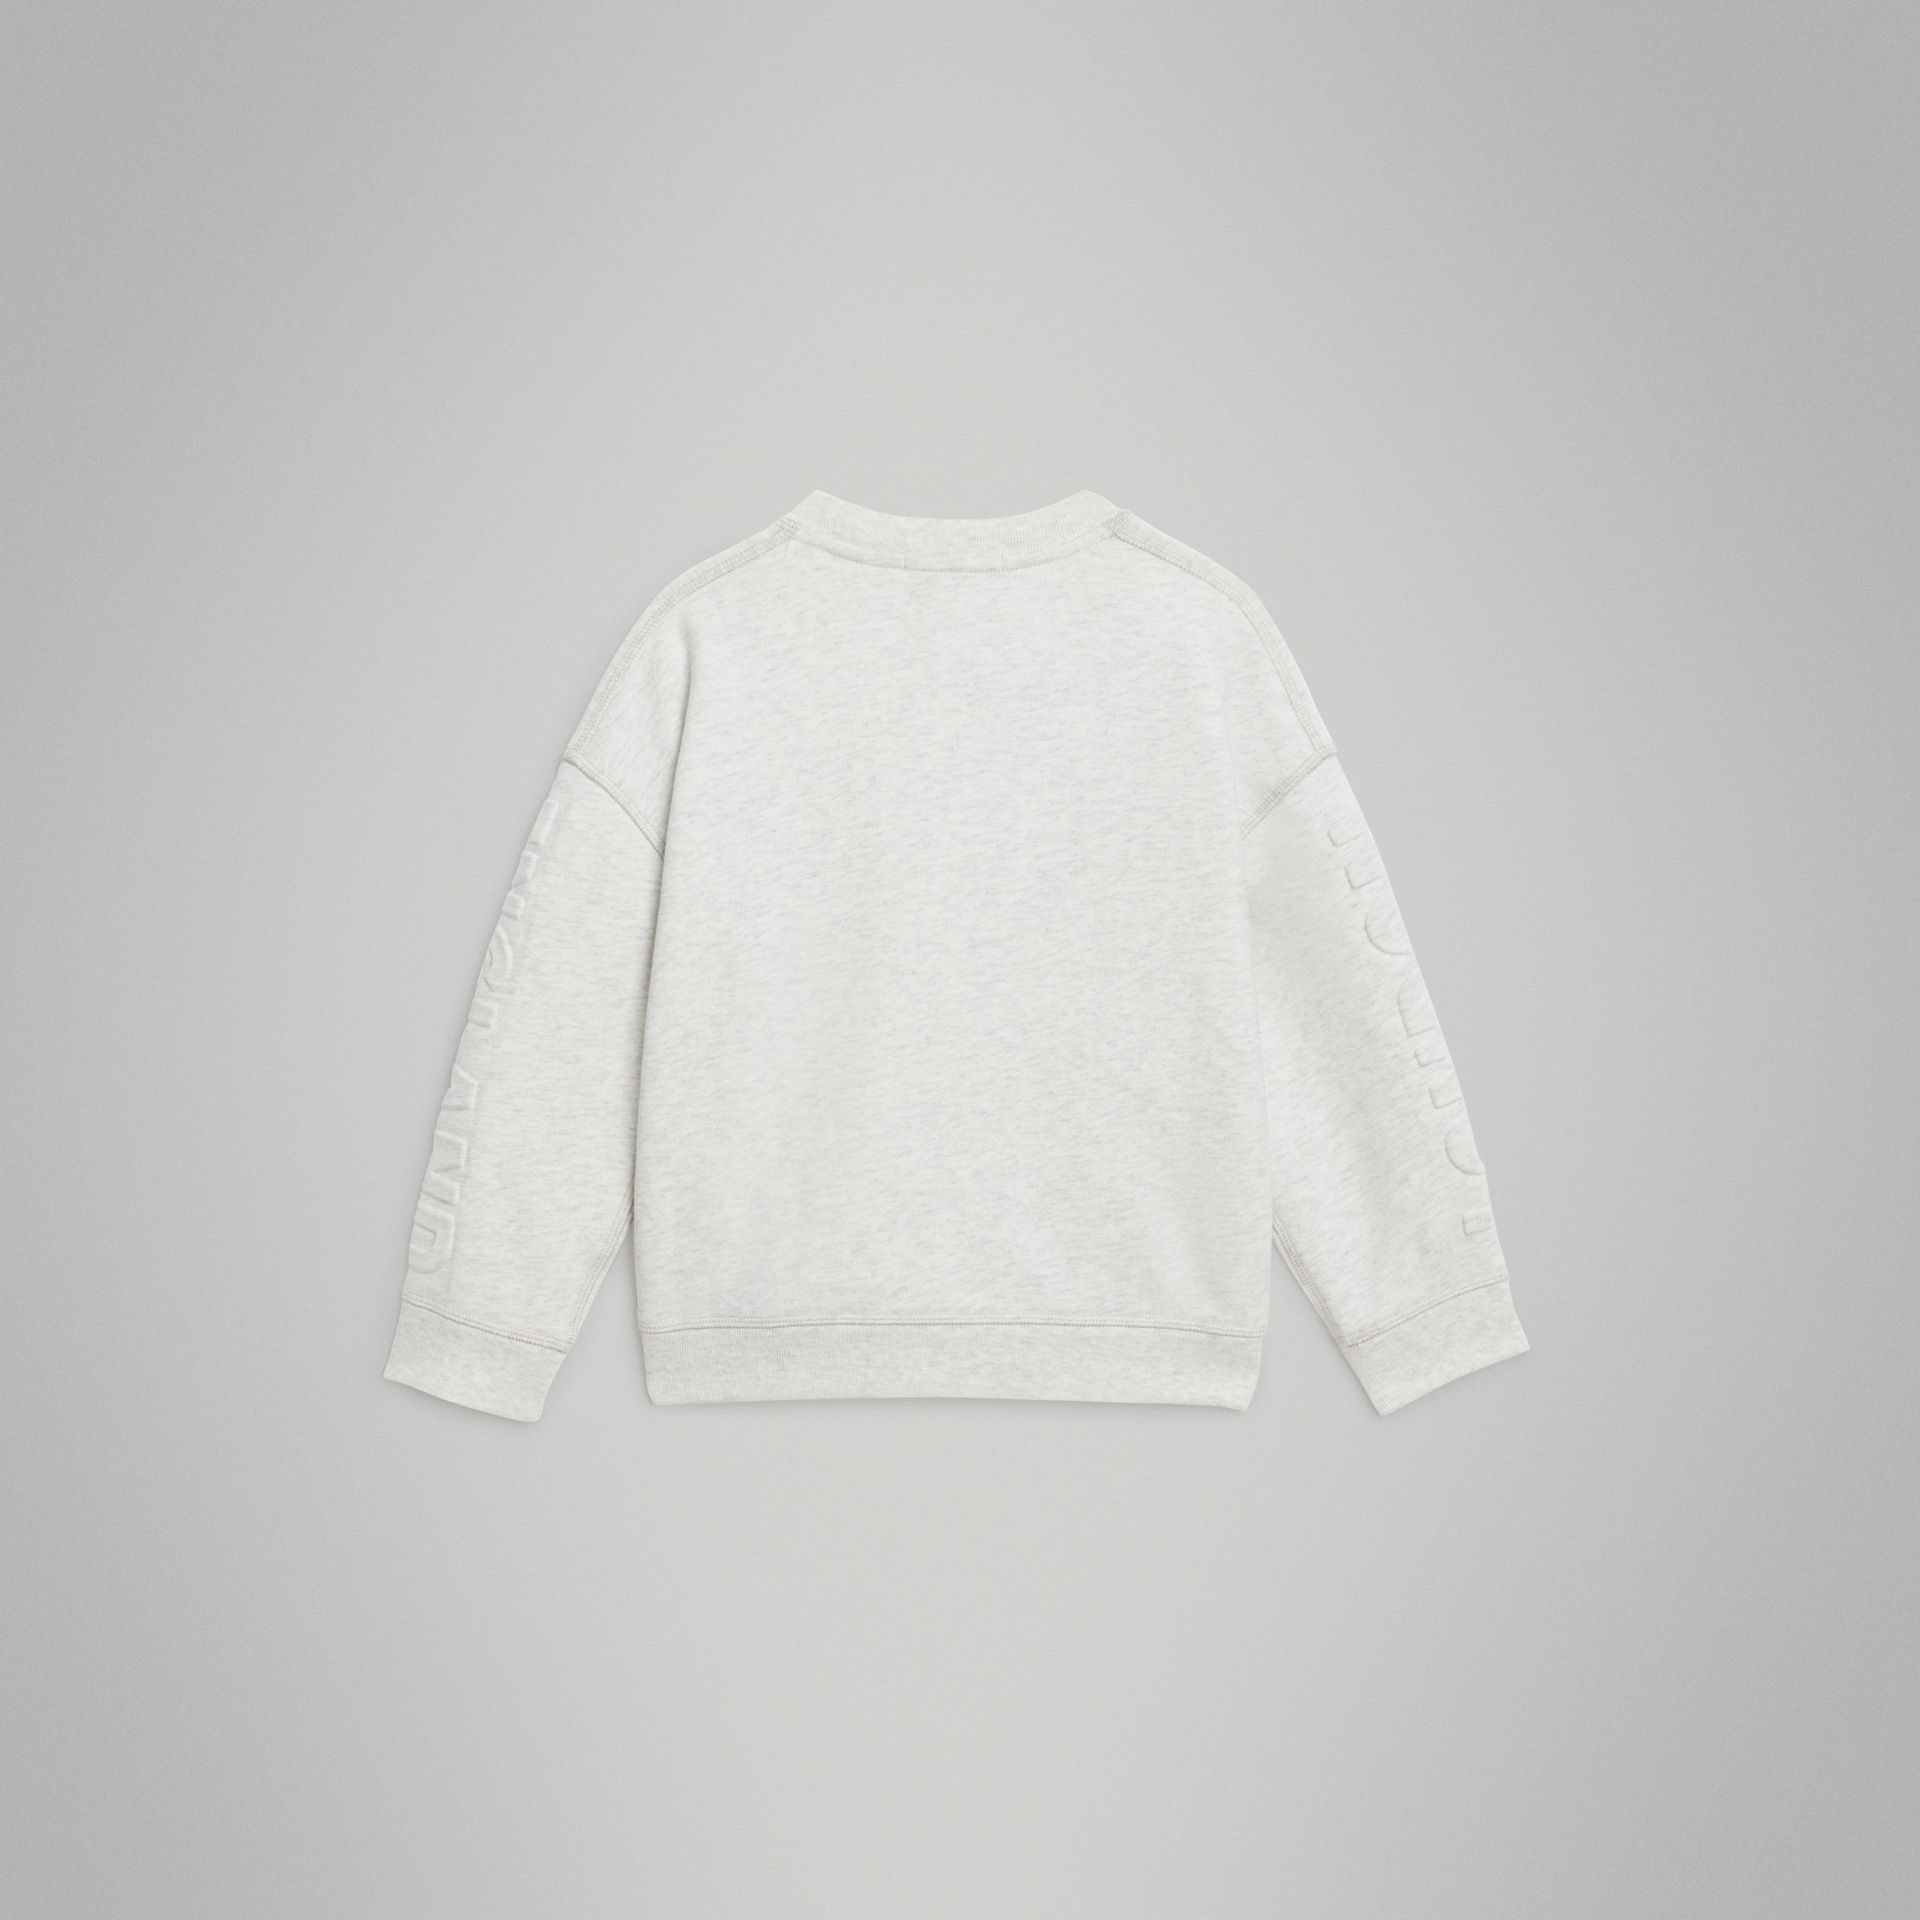 Sweat-shirt en coton avec logo estampé (Camaïeu De Blancs) | Burberry - photo de la galerie 3